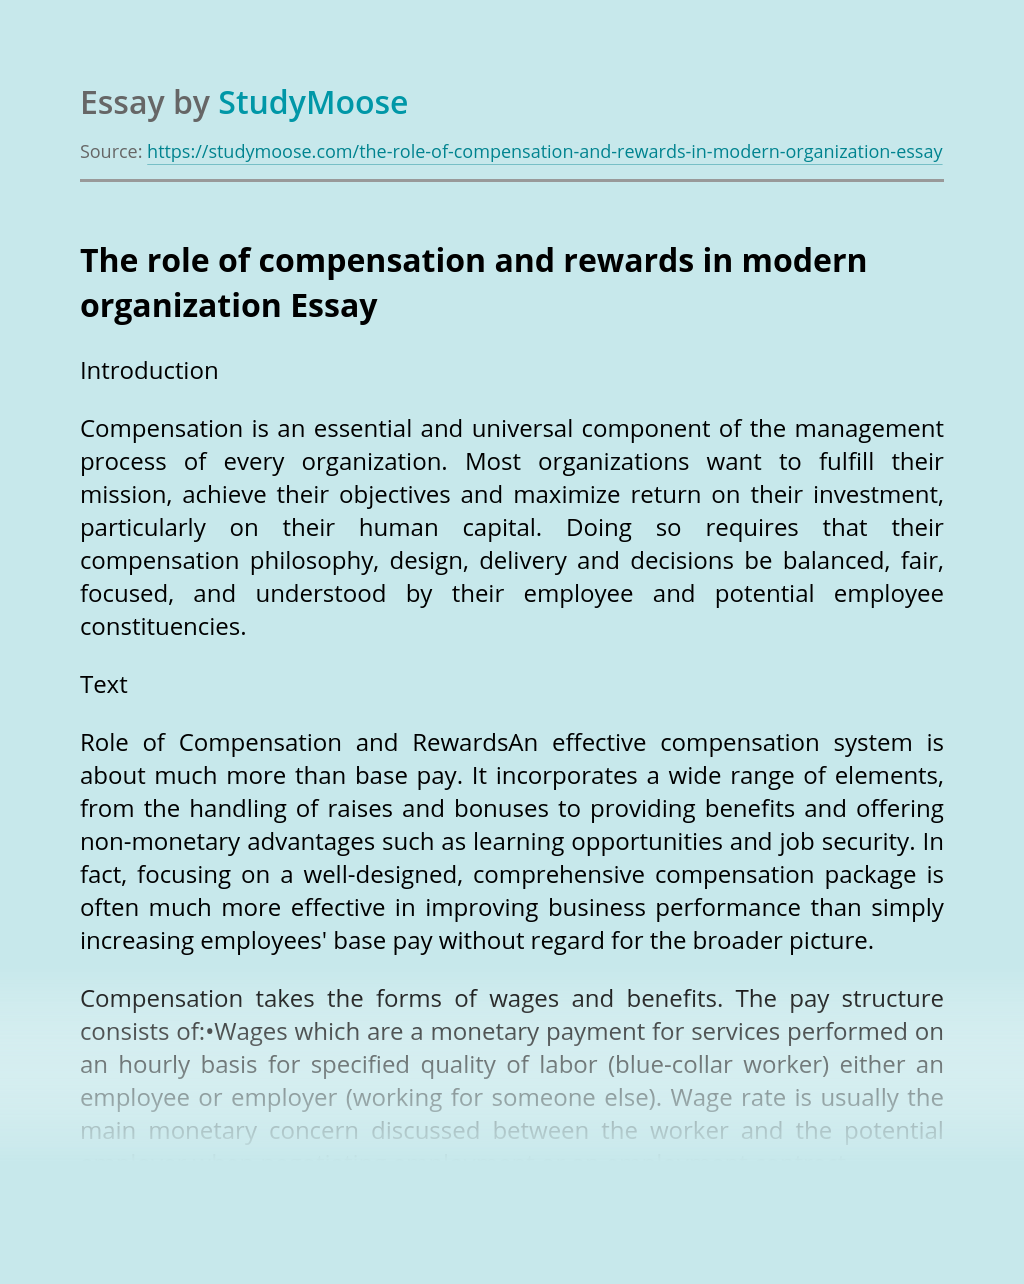 The role of compensation and rewards in modern organization